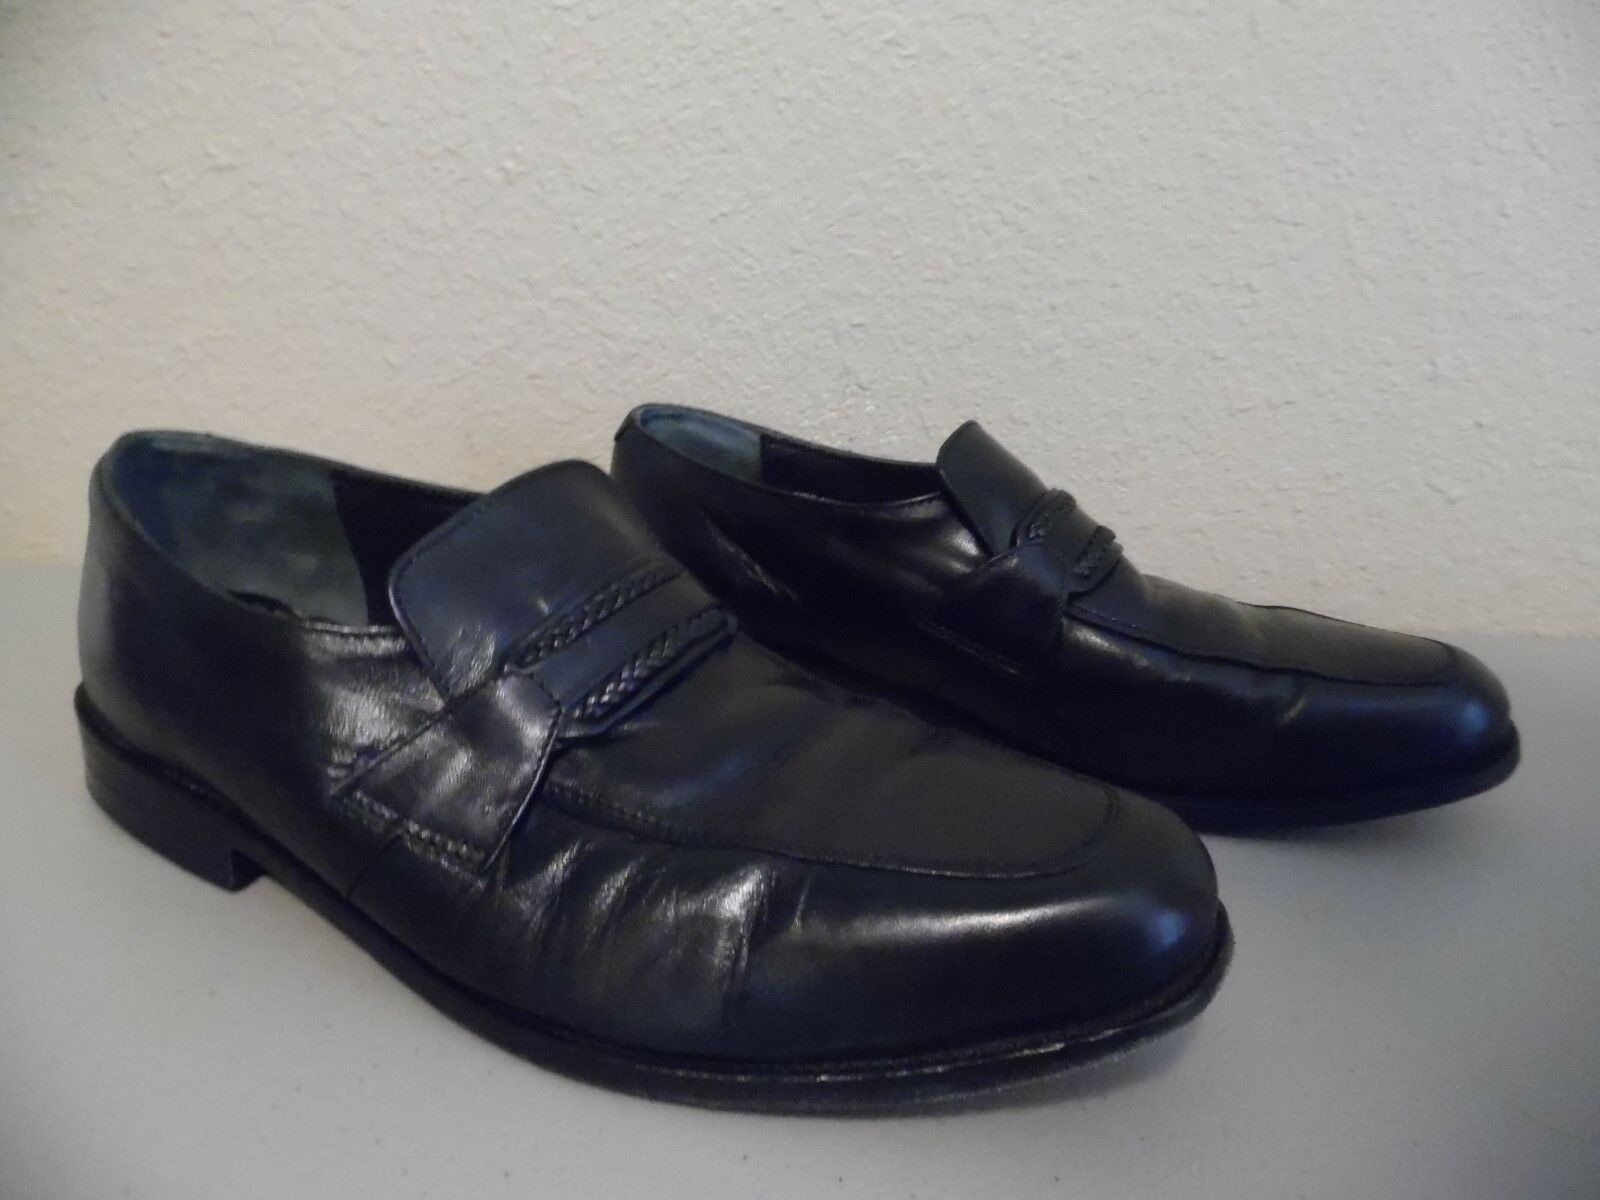 DAVID TAYLOR Men's Black Leather Upper Size & Lining Loafers Shoes Size Upper 11 M 6b2d0b